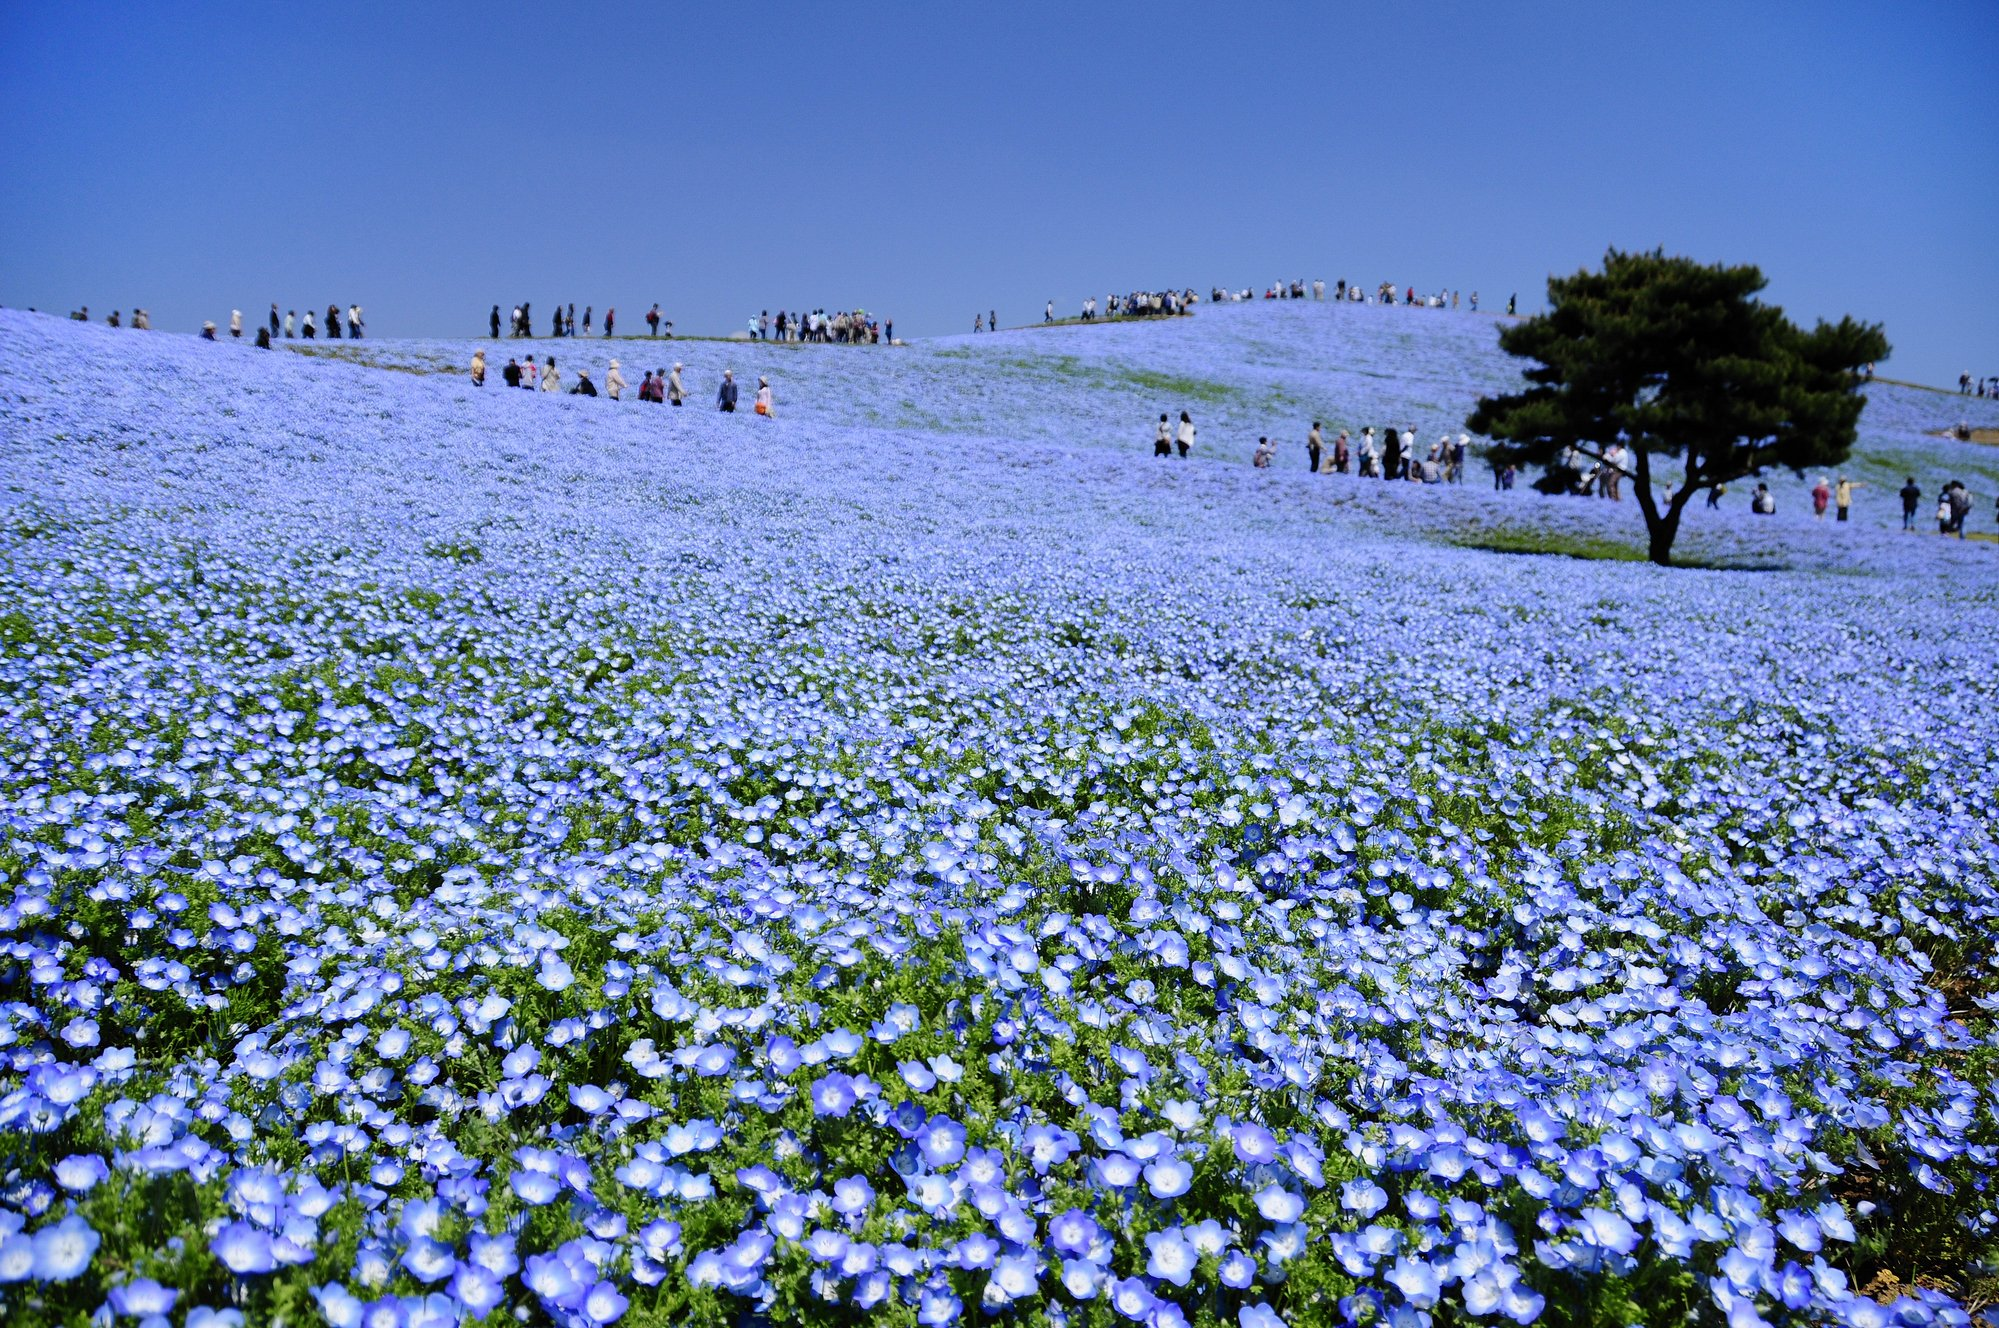 Baby Blue Eyes Flowers at Hitachi Seaside Park